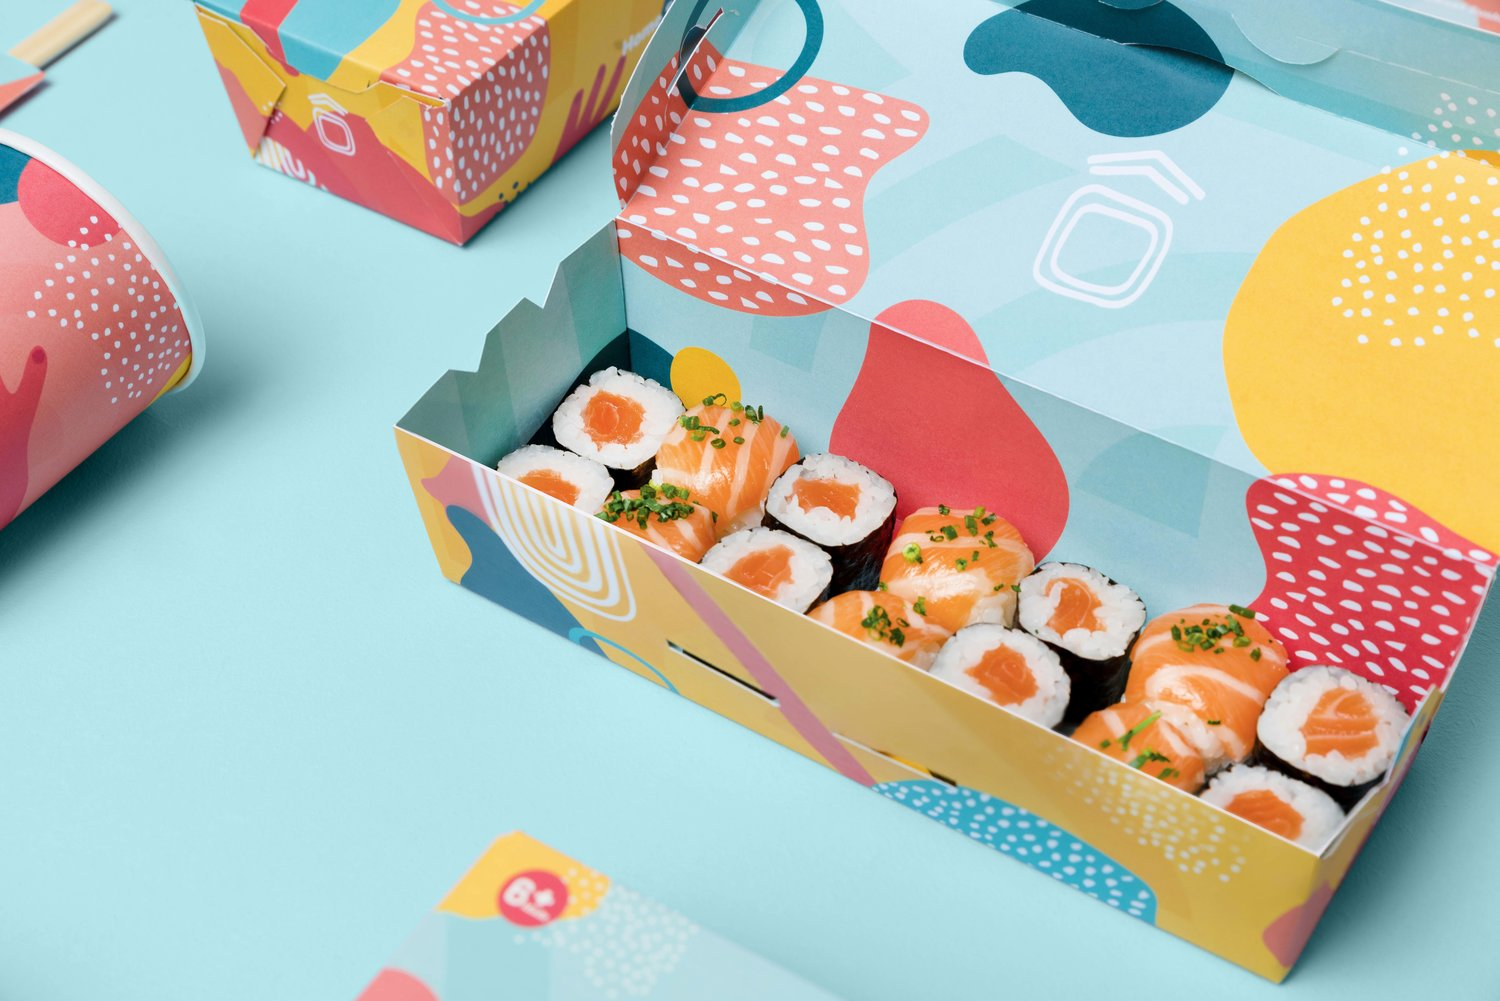 Home Sweet Home Sushi Kids — Confusing Product Design! (Portugal)